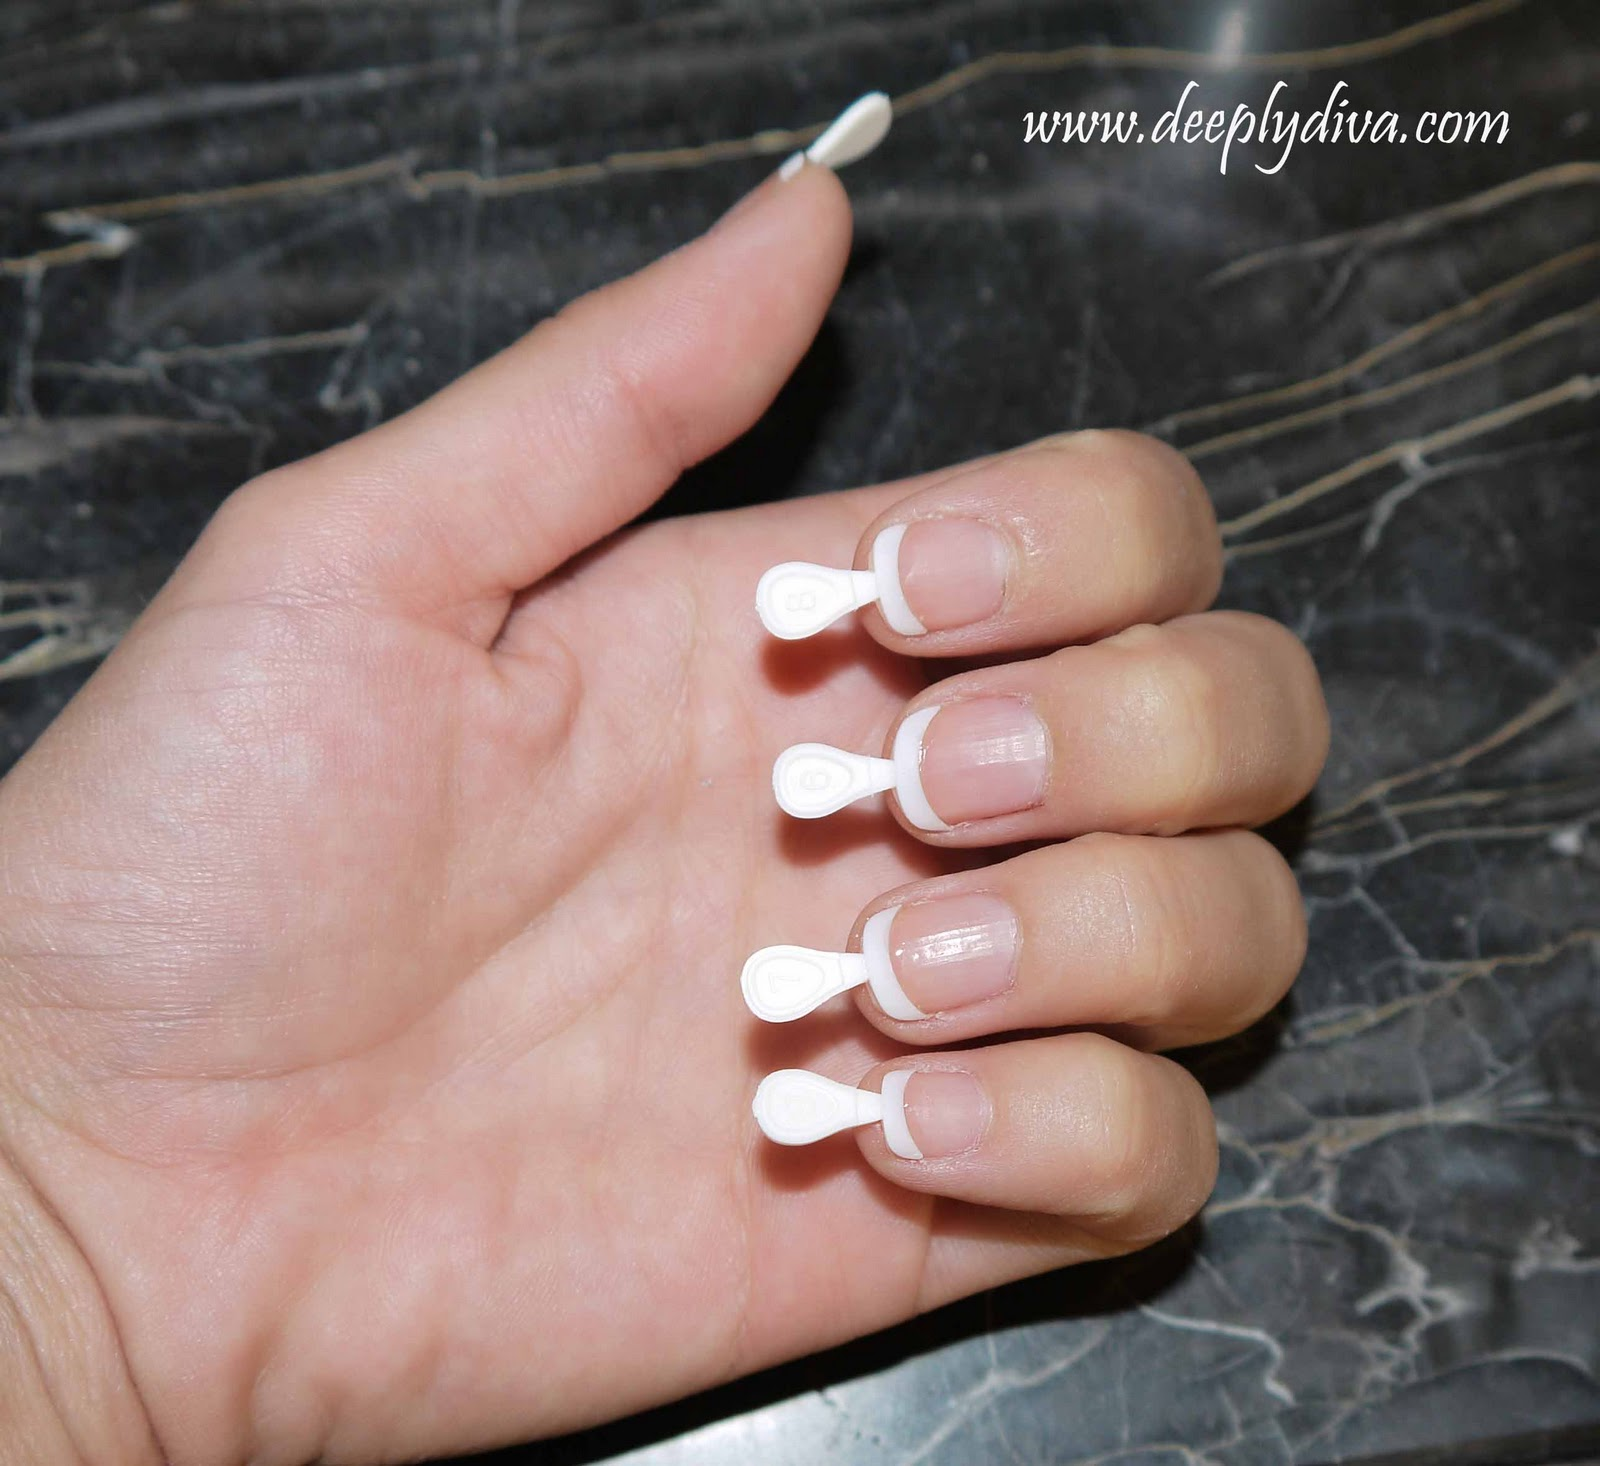 Deeply Diva: Essence Professional Nail Tips